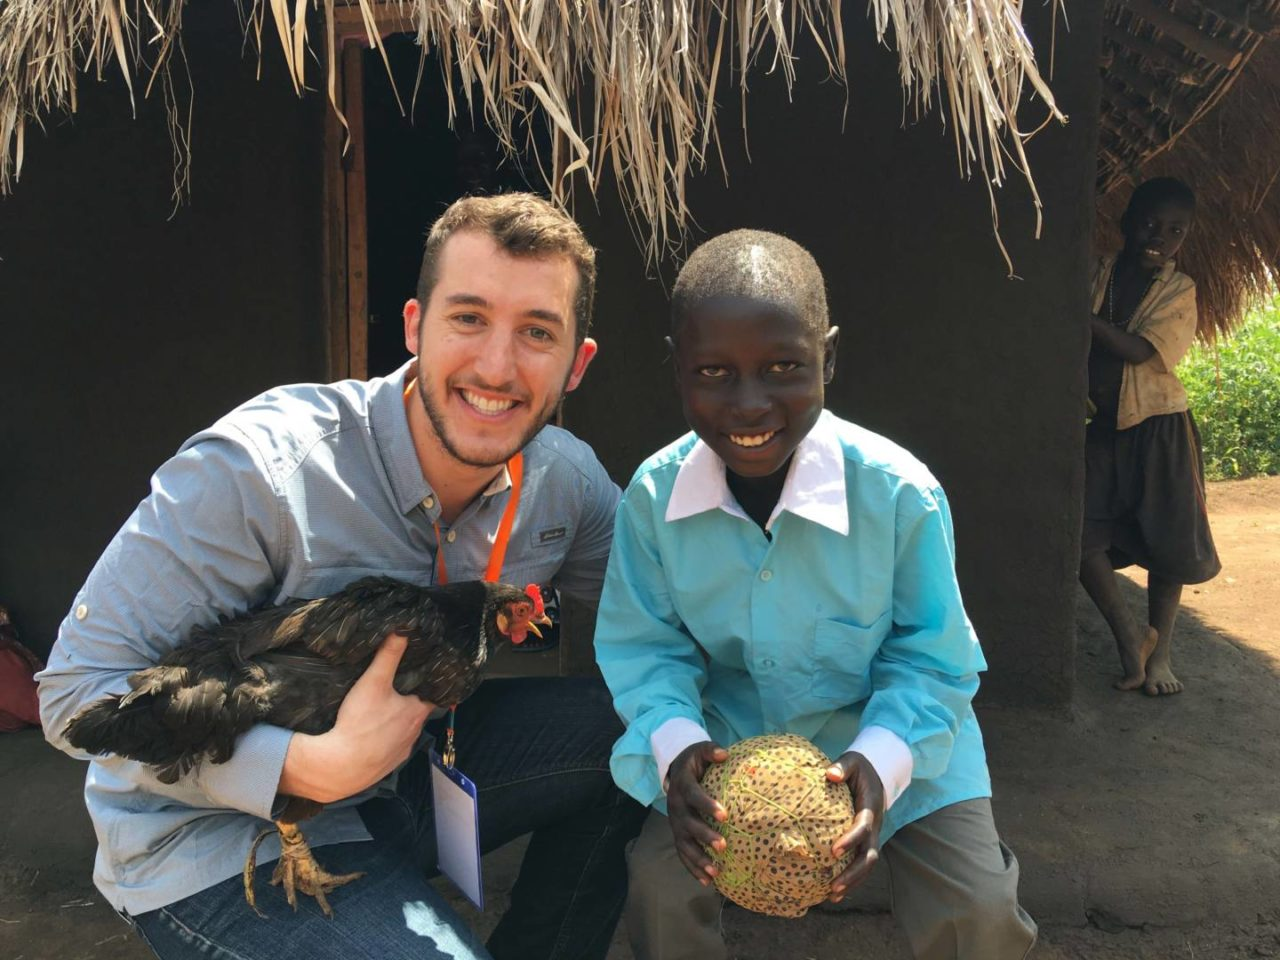 Reid Hutchinson poses with his sponsored child, Alfred, when he visited him in Uganda in 2016.